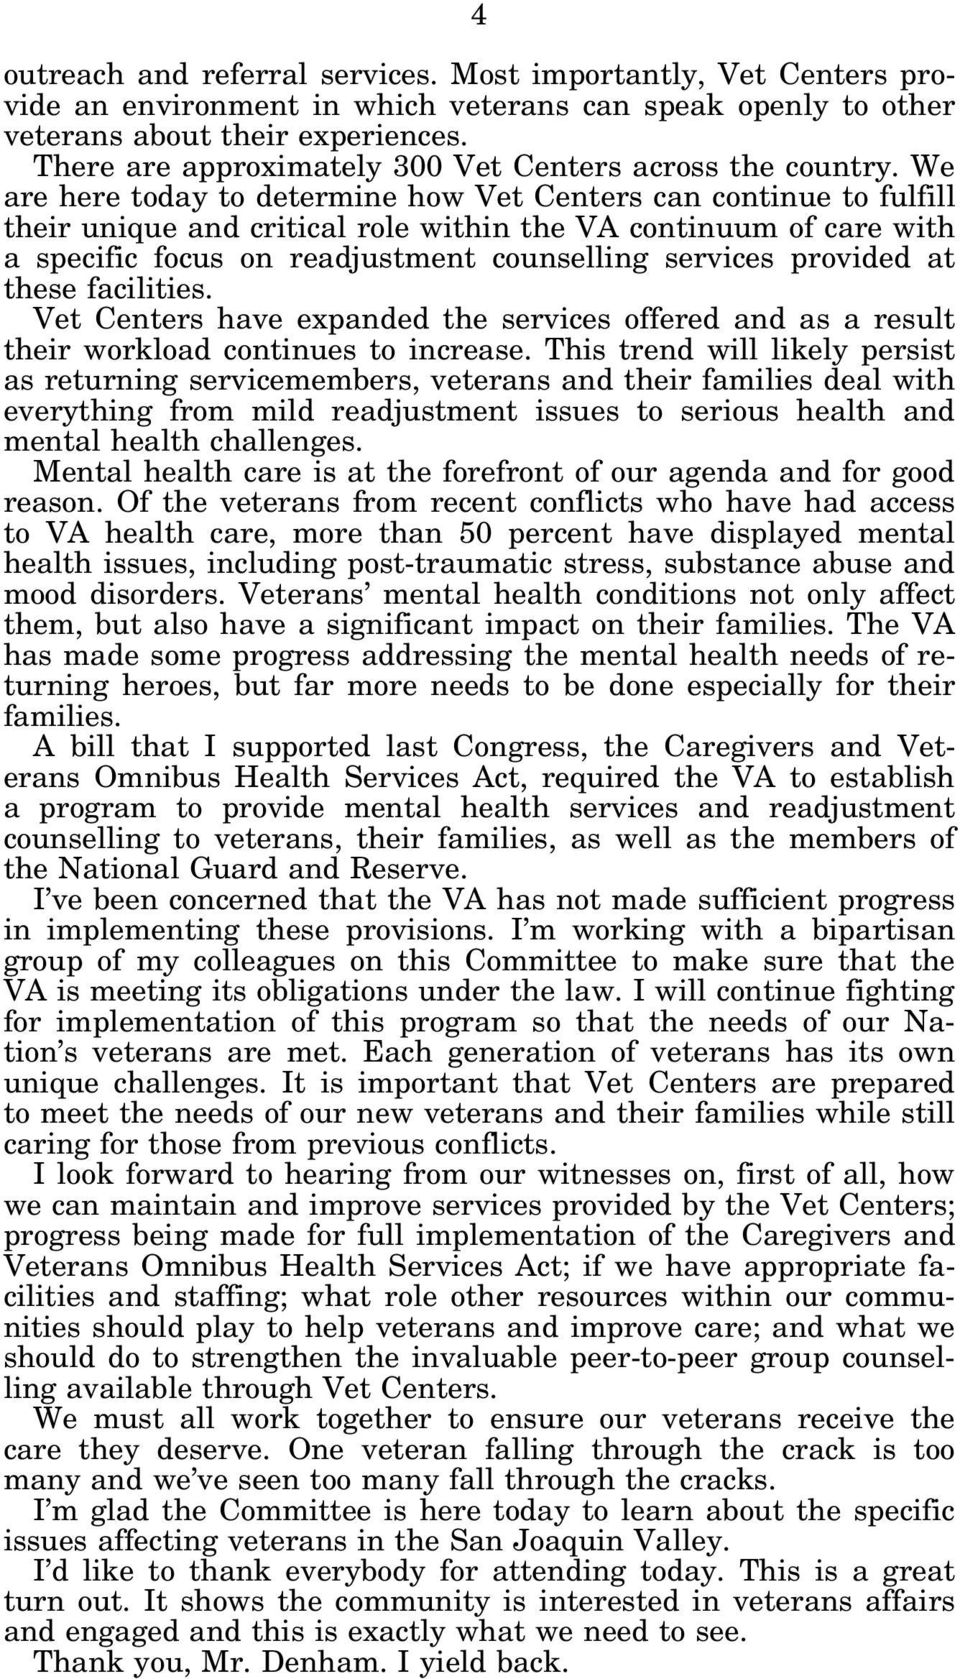 We are here today to determine how Vet Centers can continue to fulfill their unique and critical role within the VA continuum of care with a specific focus on readjustment counselling services